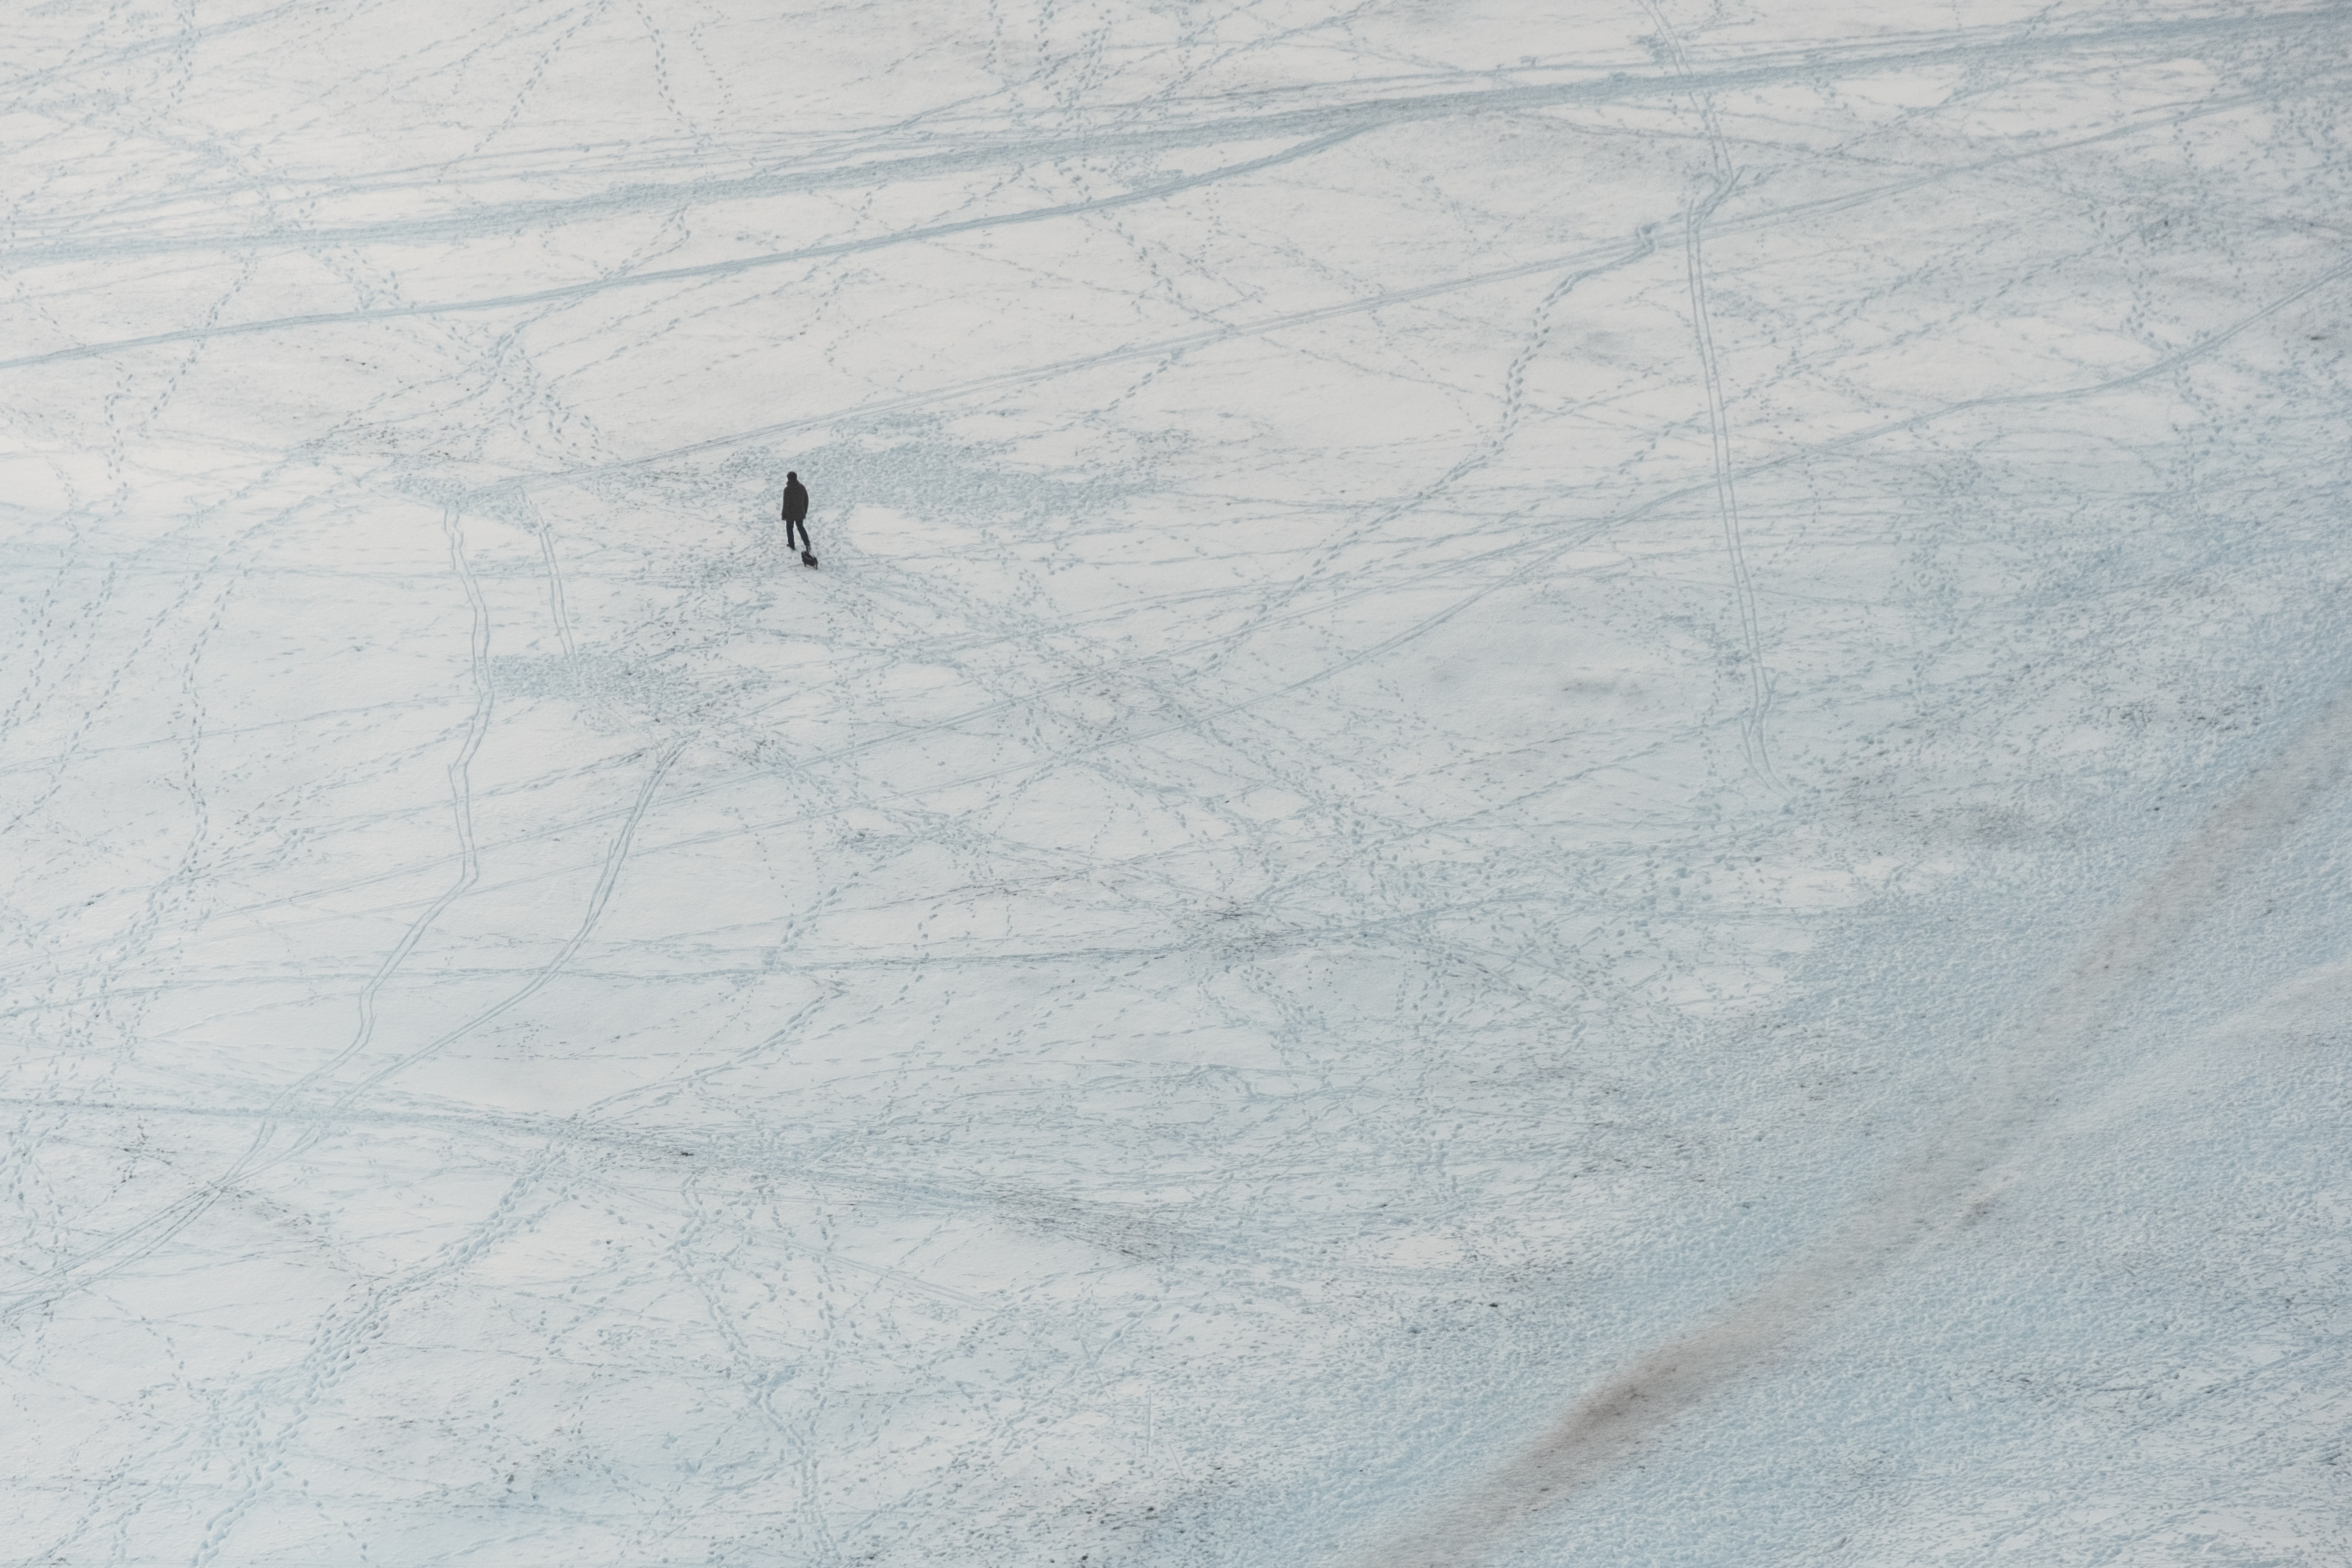 aerial view of person walking on snow covered ground